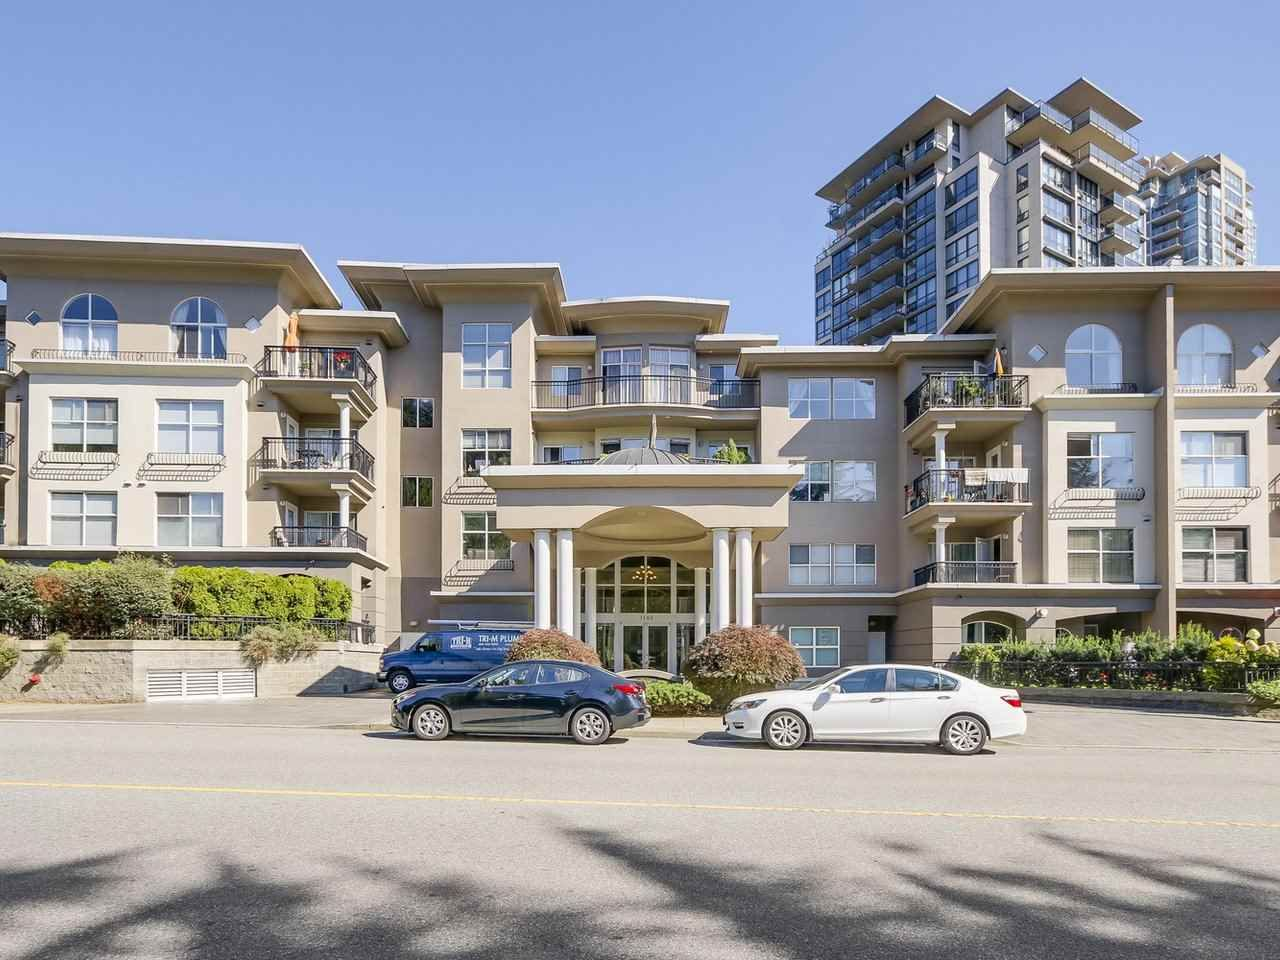 Main Photo: 309 1185 PACIFIC Street in Coquitlam: North Coquitlam Condo for sale : MLS®# R2197570